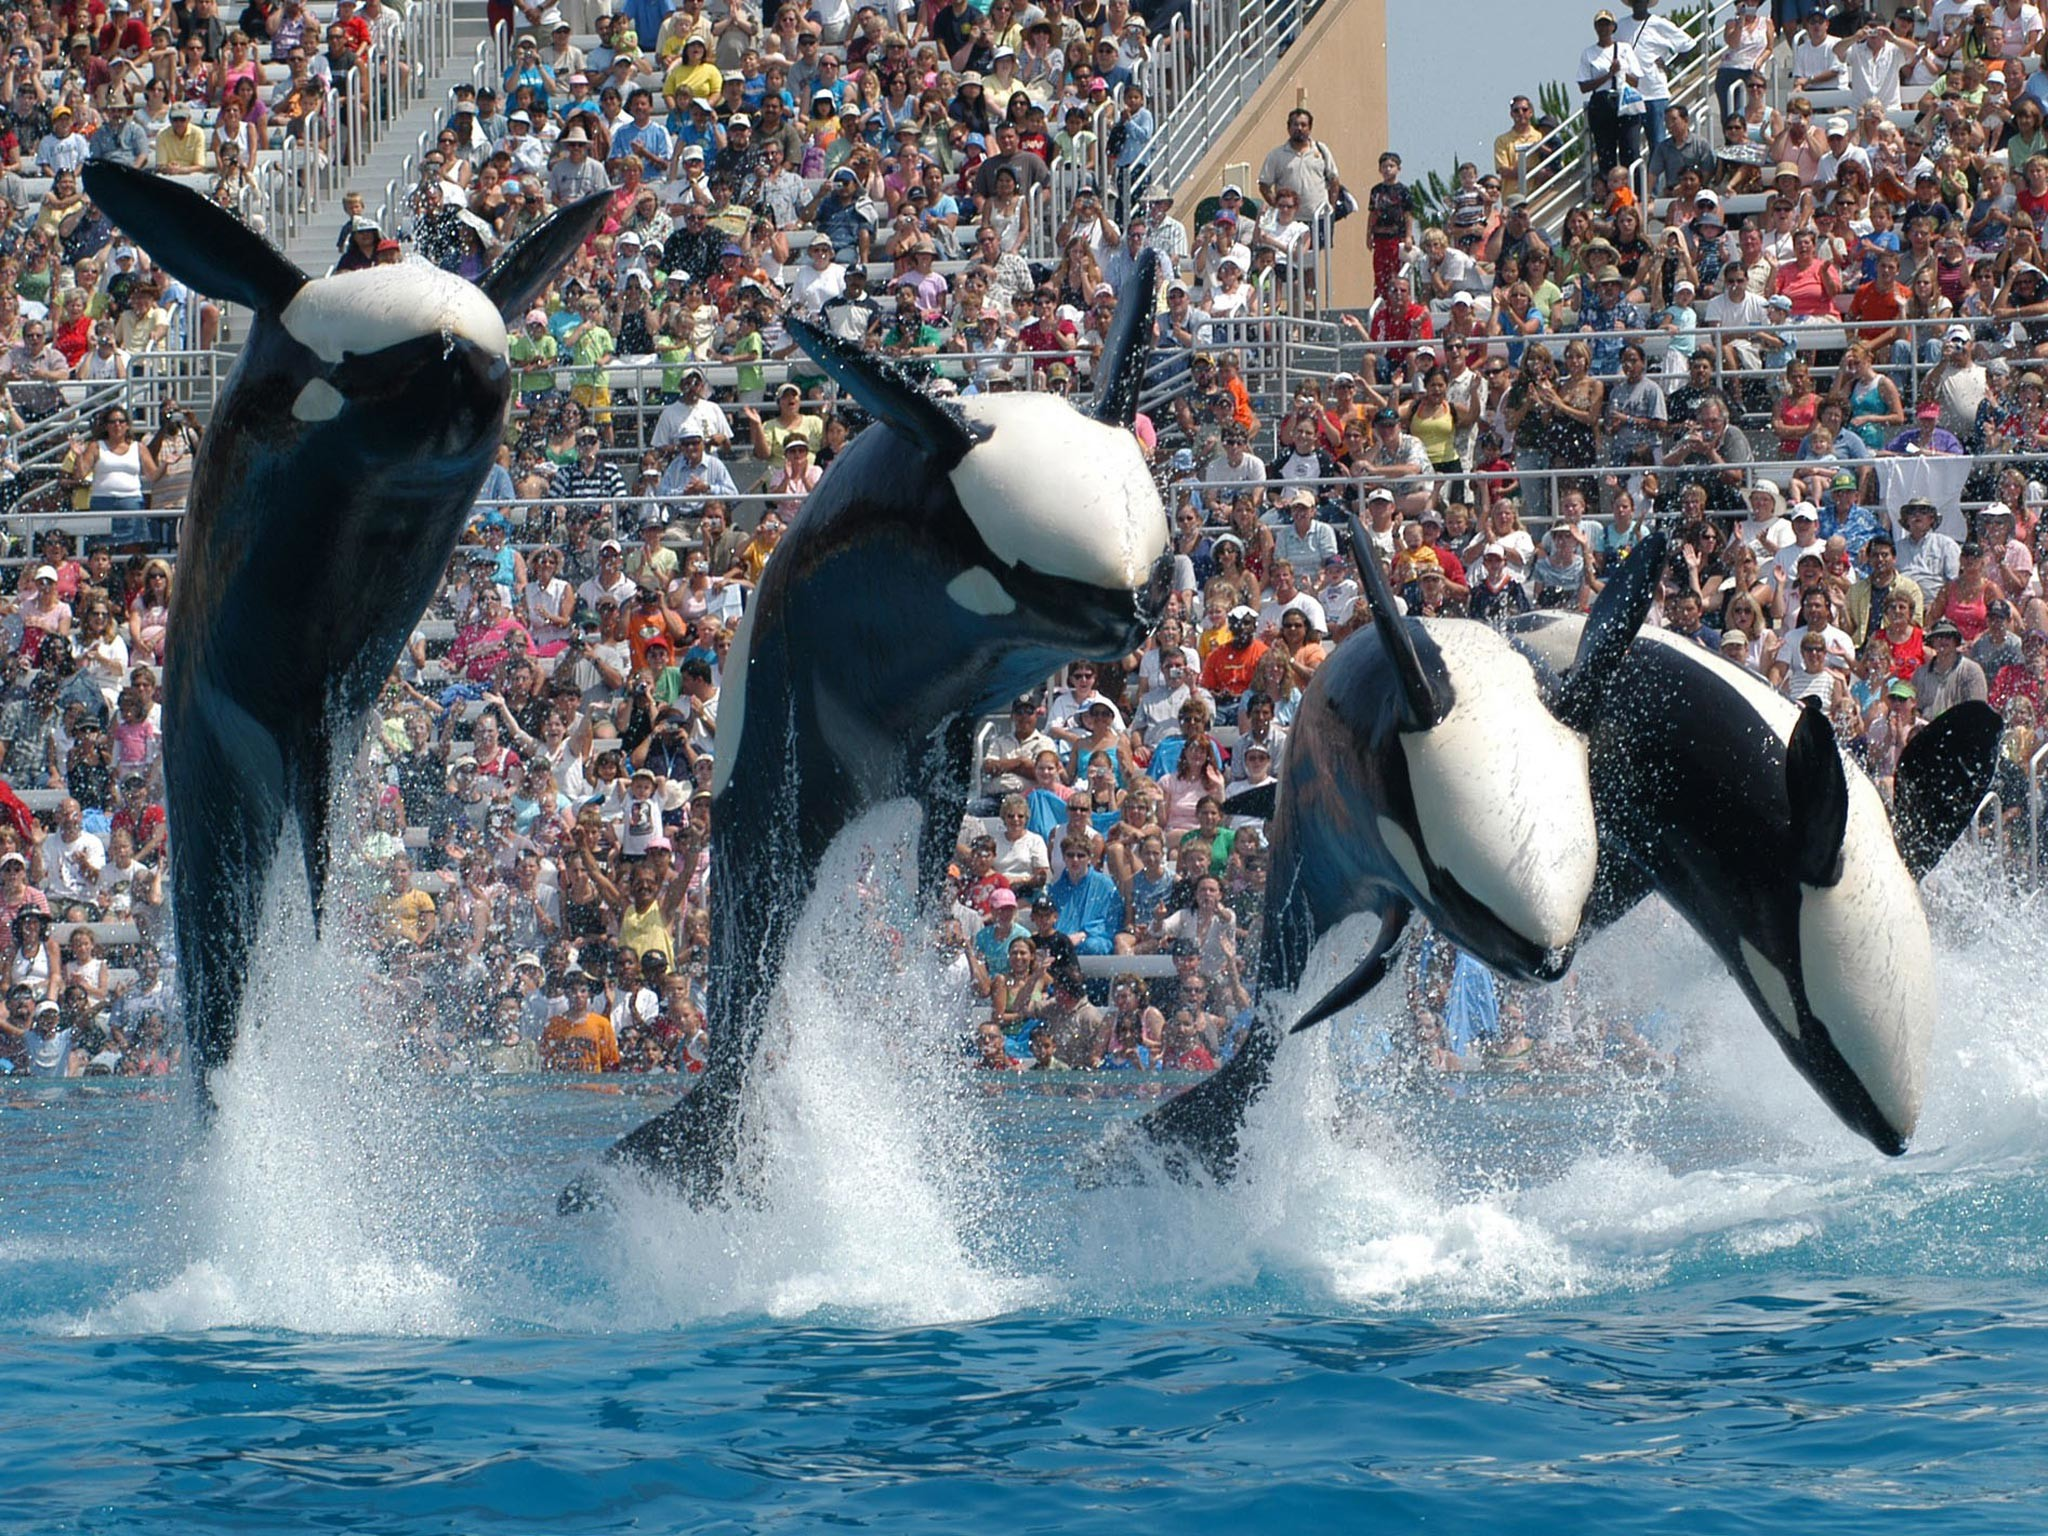 Res: 2048x1536, SeaWorld lawsuit claims park profits from 'deceptive business practices'  and that orcas suffer abusive treatment | The Independent